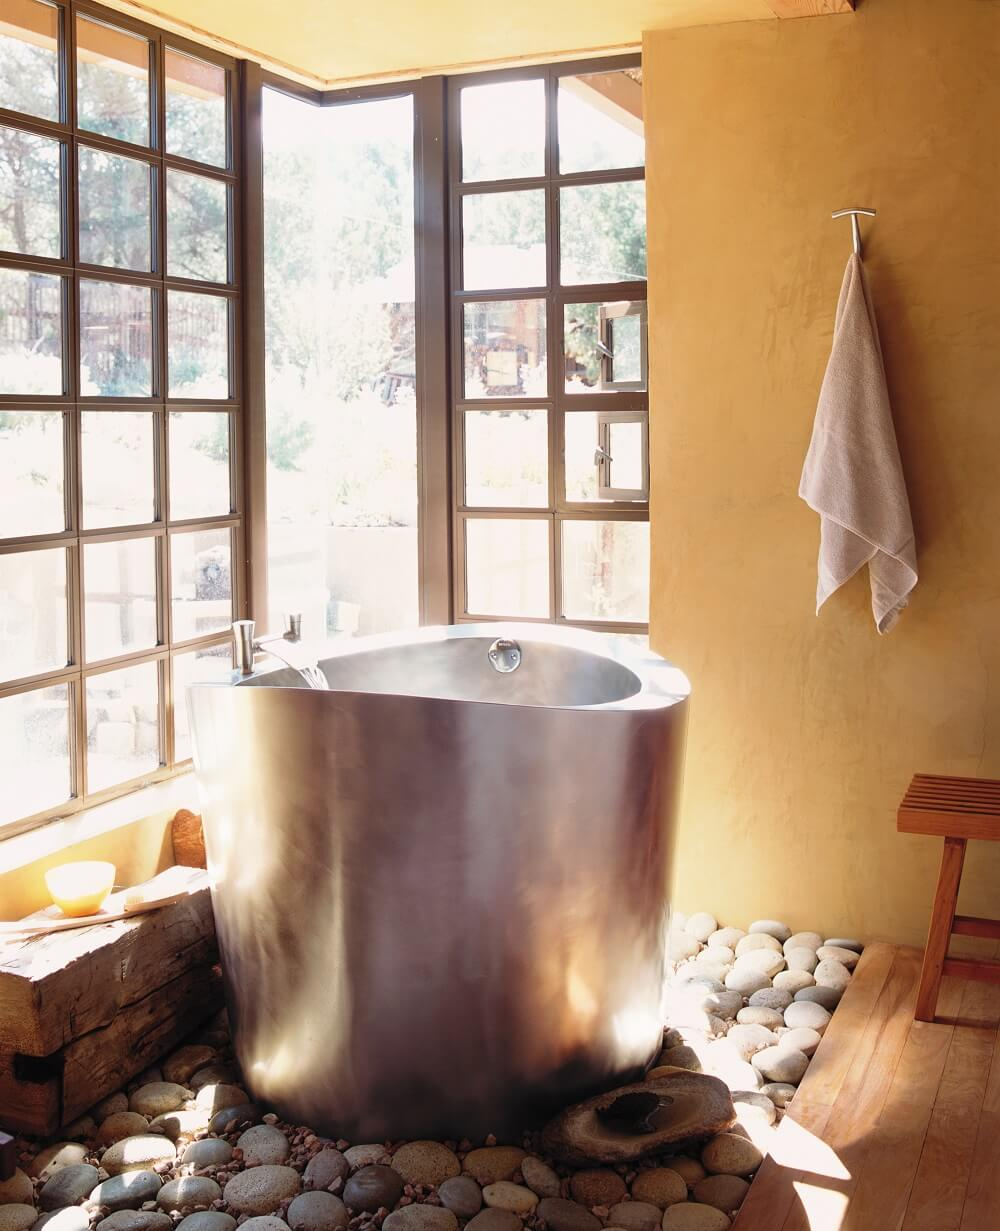 Stainless Steel Circular Japanese Soaking Bath 42 round x 35